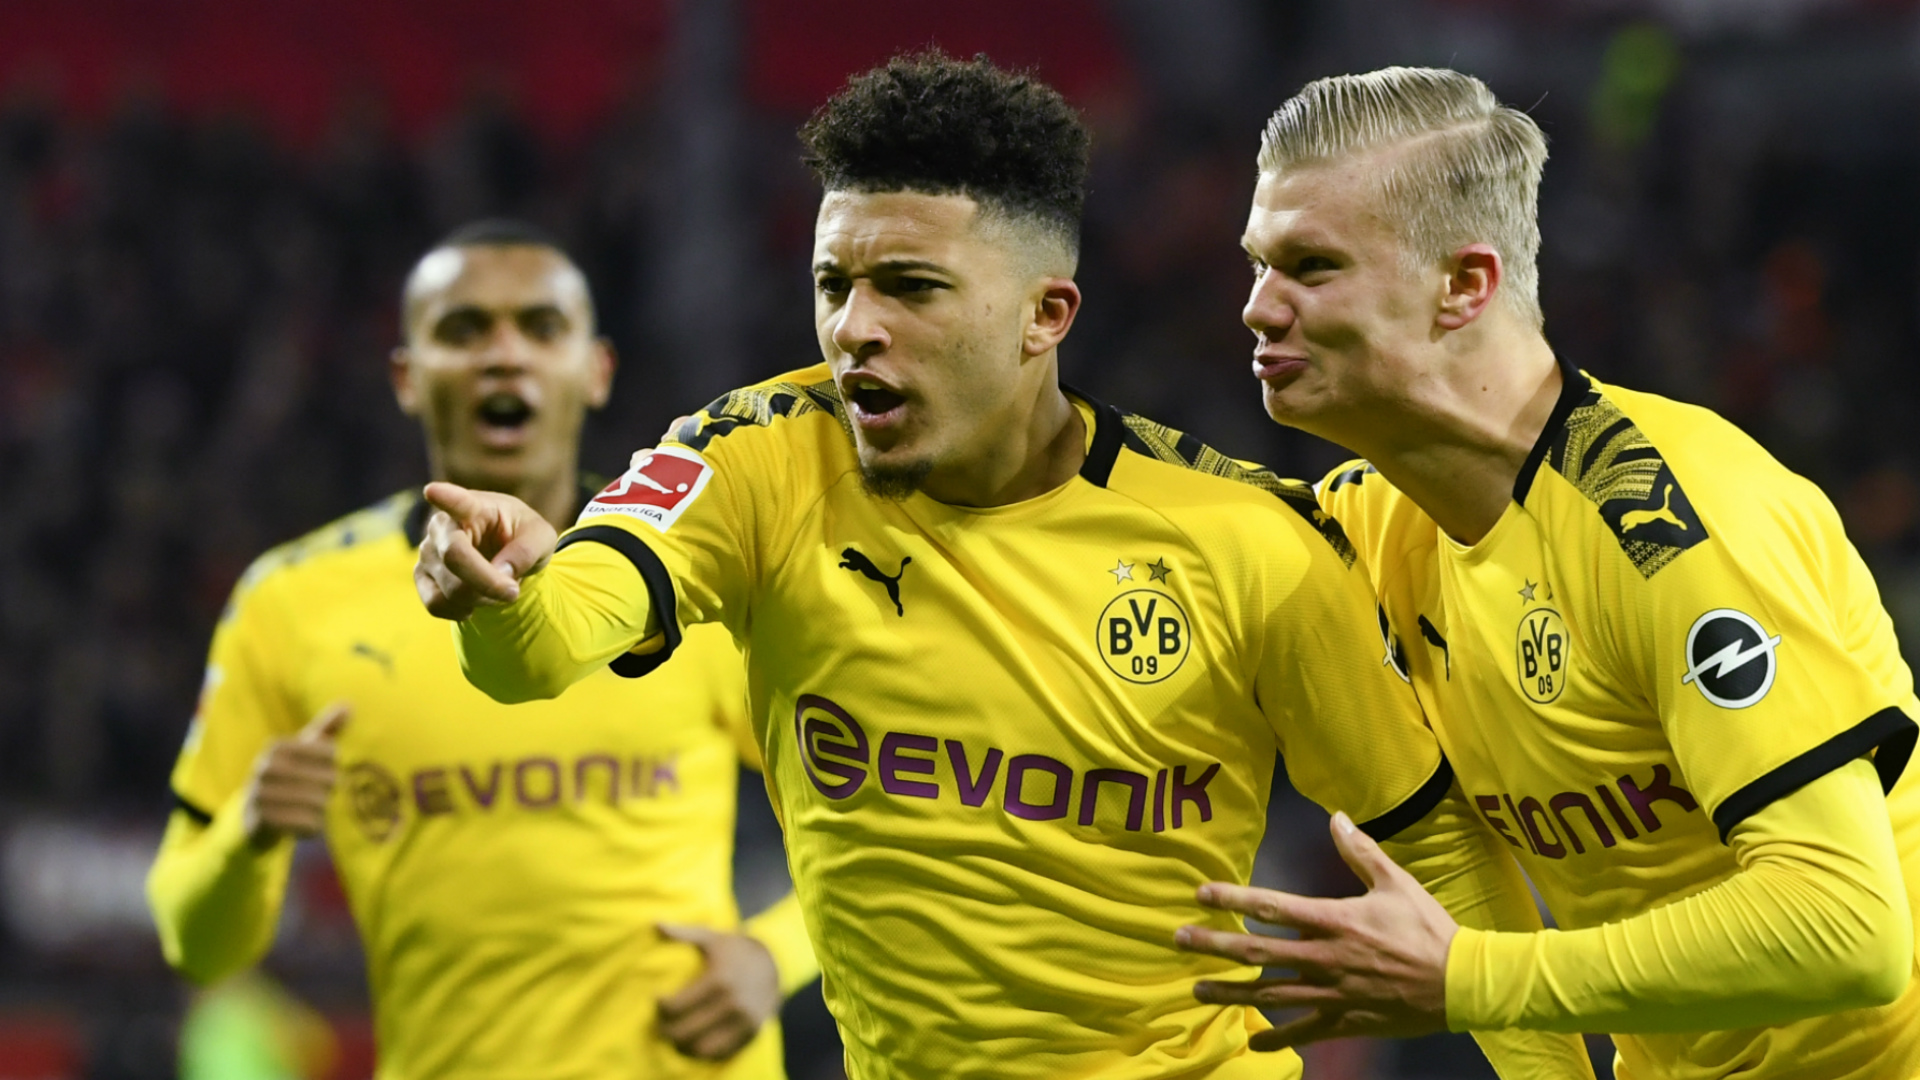 'Sancho has done an amazing job' – Pulisic pleased for those following in his footsteps at Dortmund